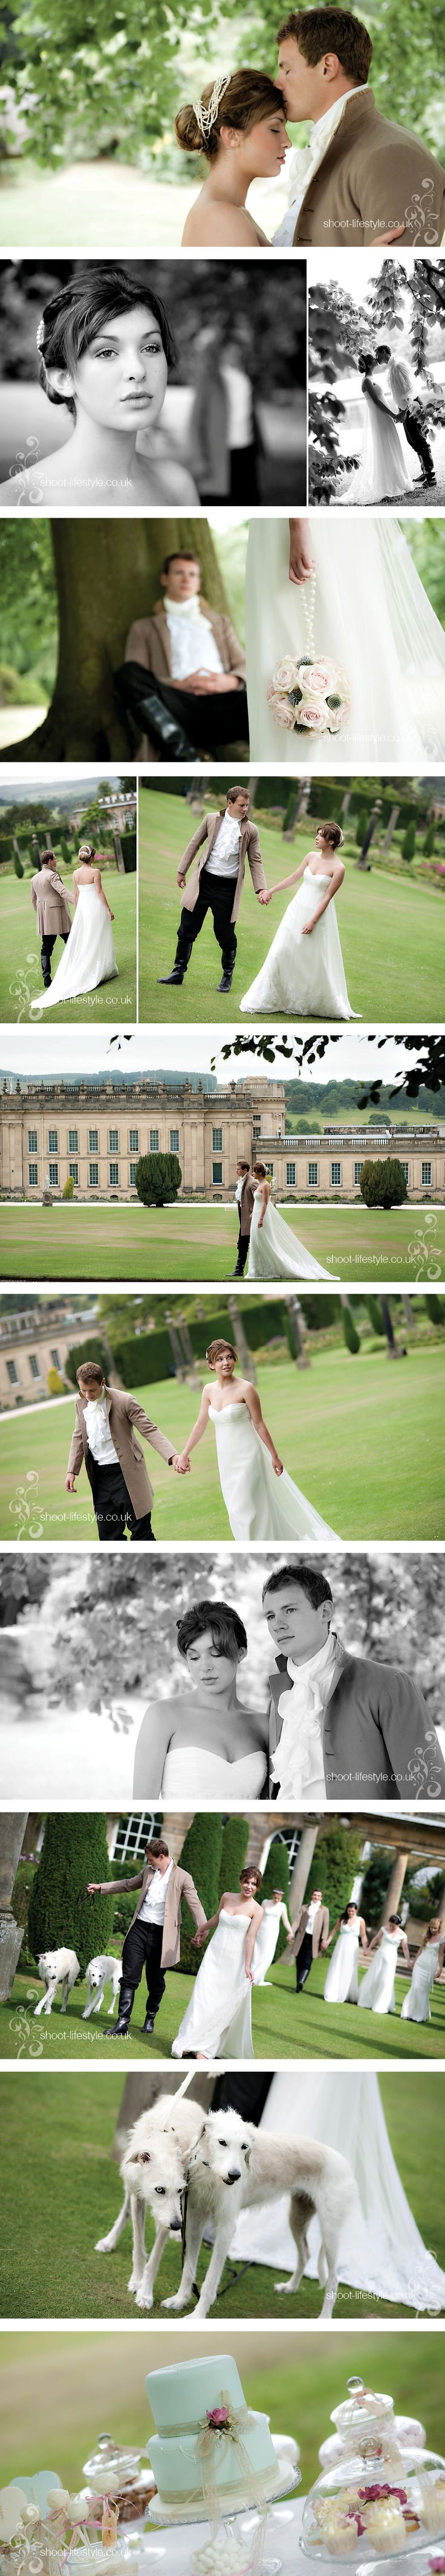 Pride and Prejudice Themed wedding photos.  Love the photos and the outfits